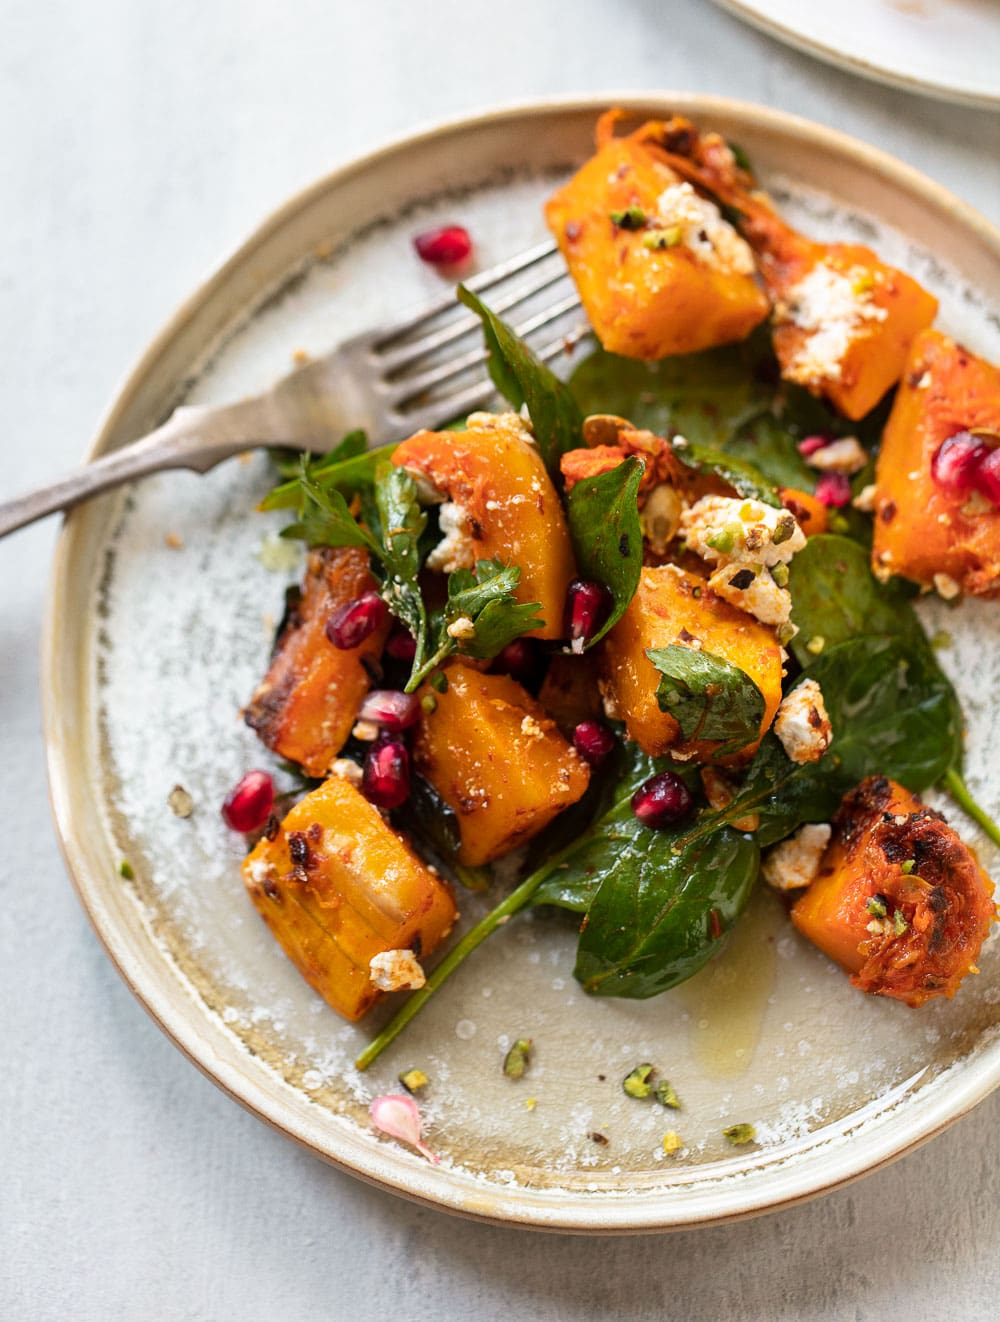 Roasted Harissa Butternut Squash Salad with Feta Cheese